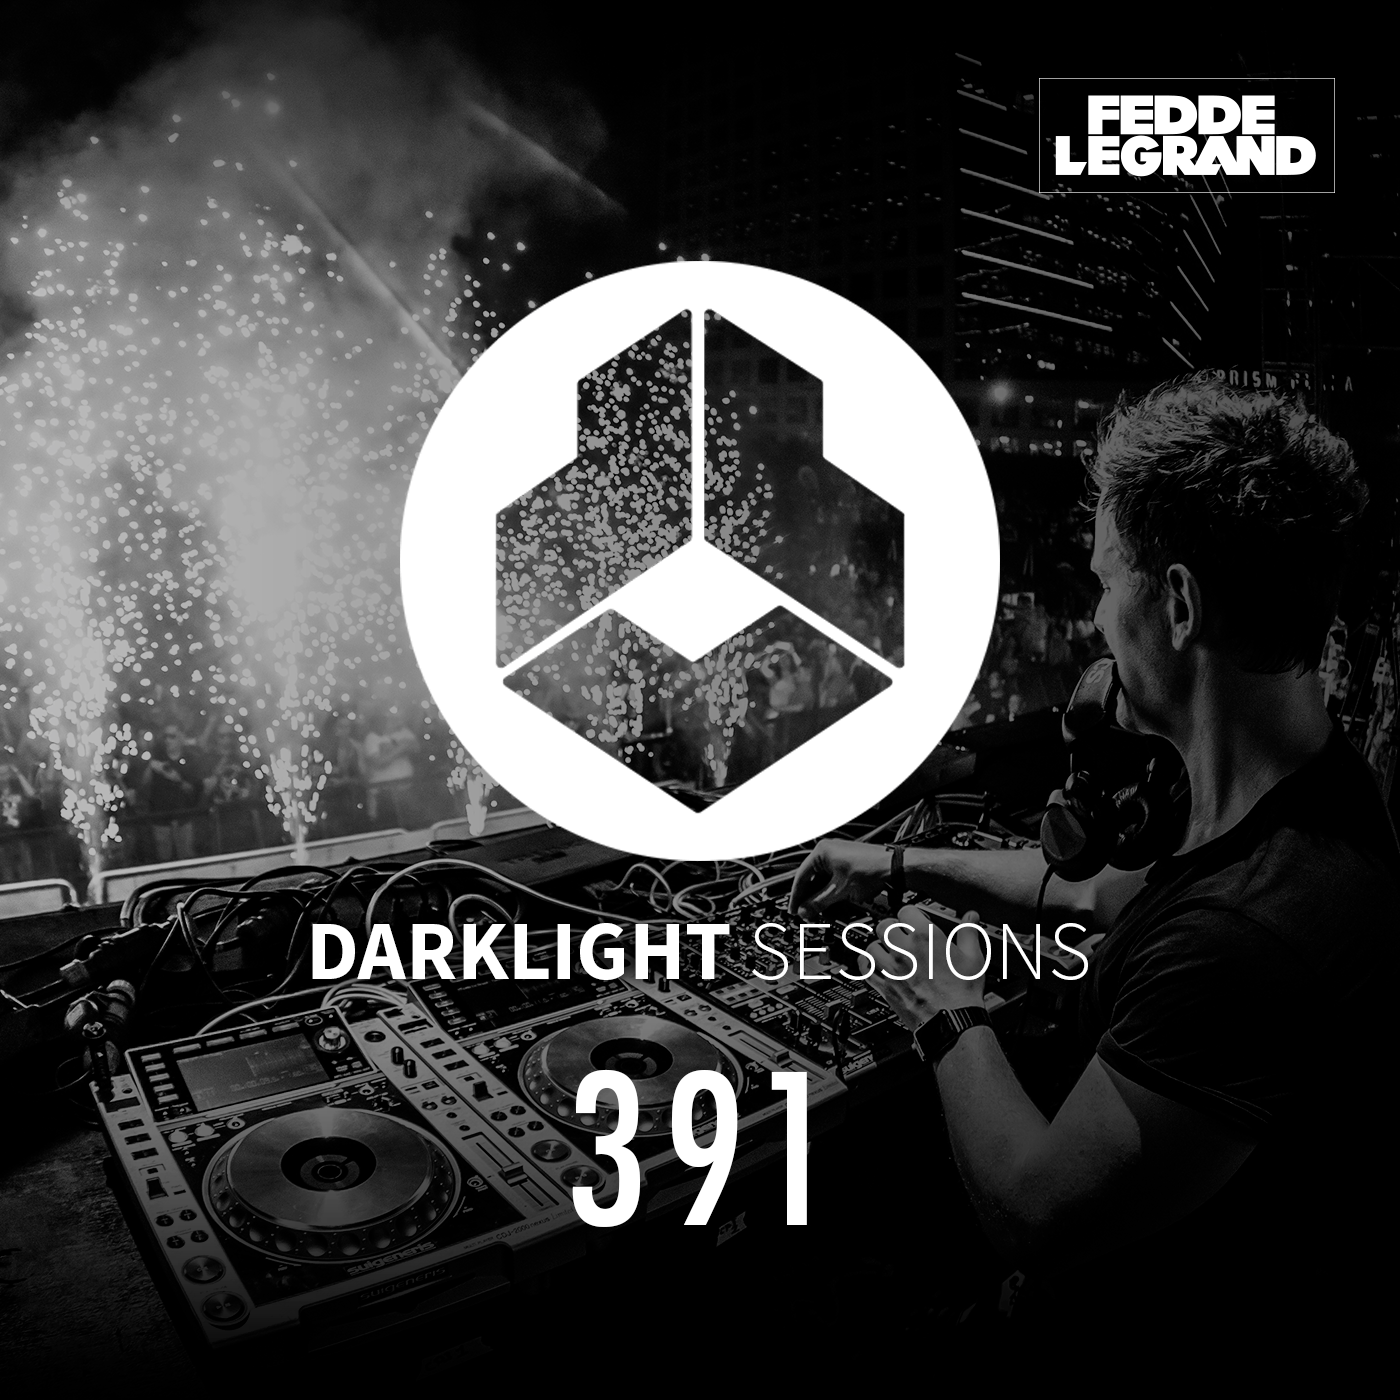 Darklight Sessions 391